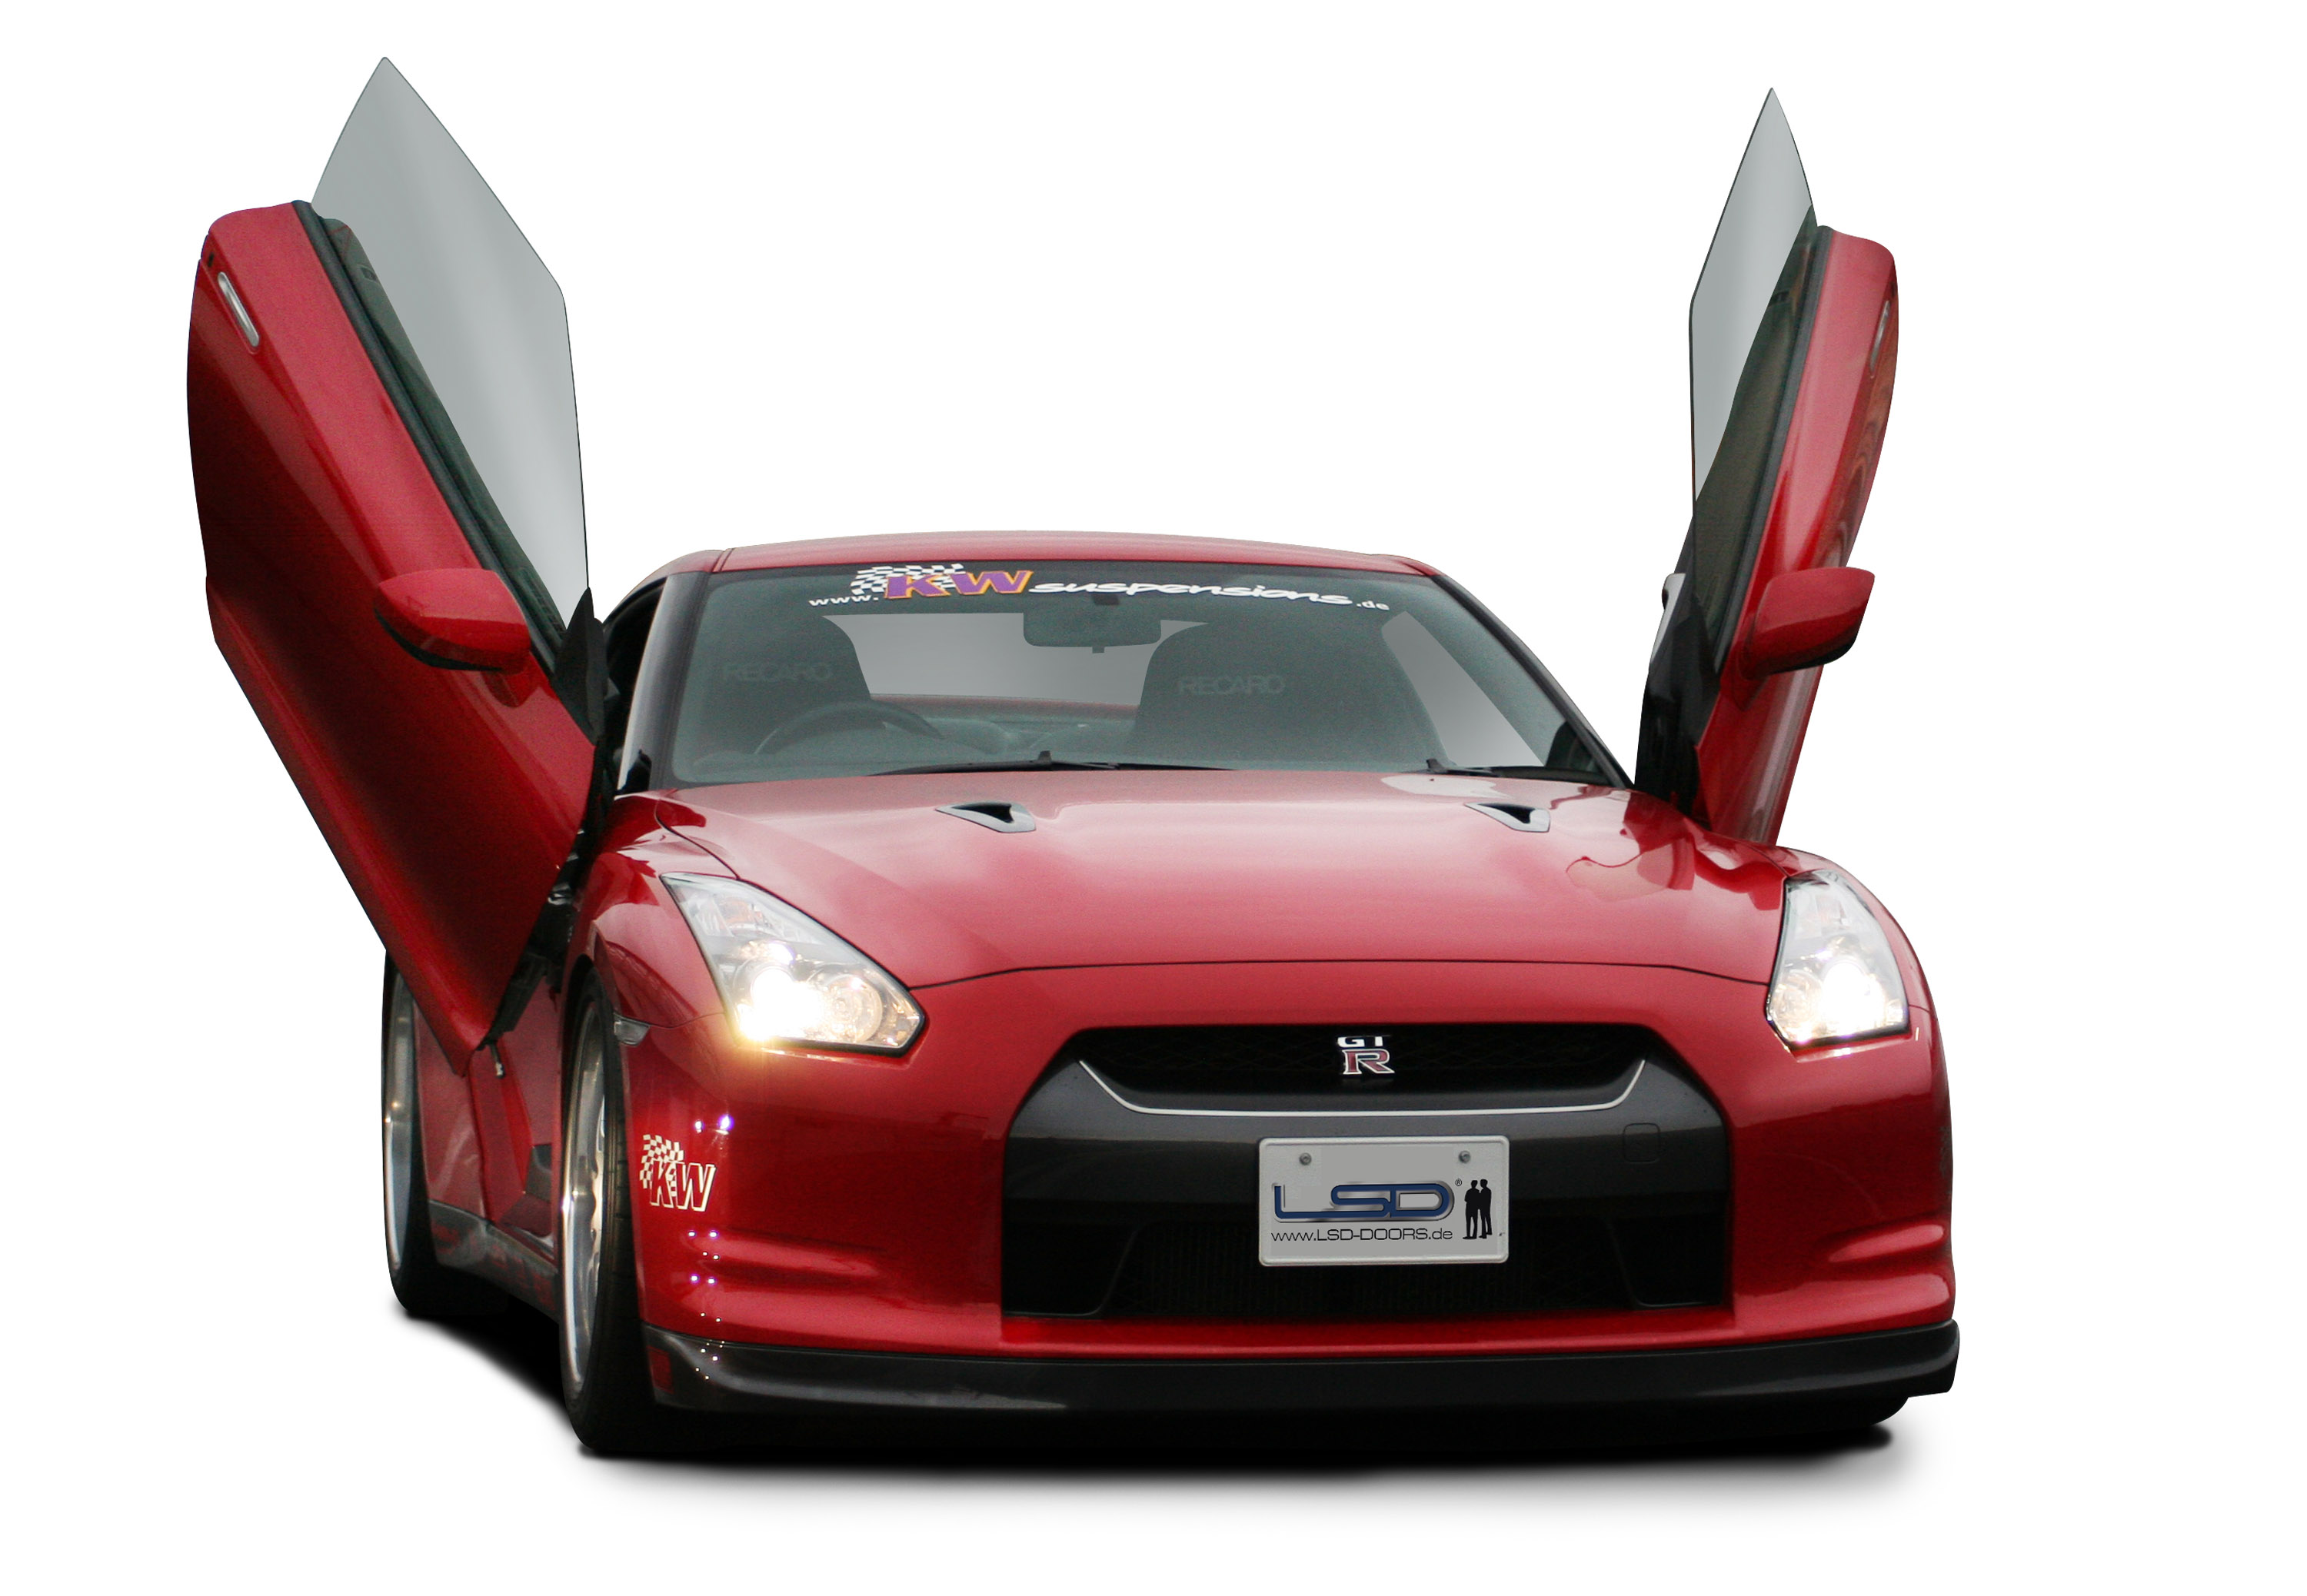 ... Nissan GT-R with LSD wing doors ...  sc 1 st  AutomobilesReview.com & LSD wing doors for Nissan GT-R